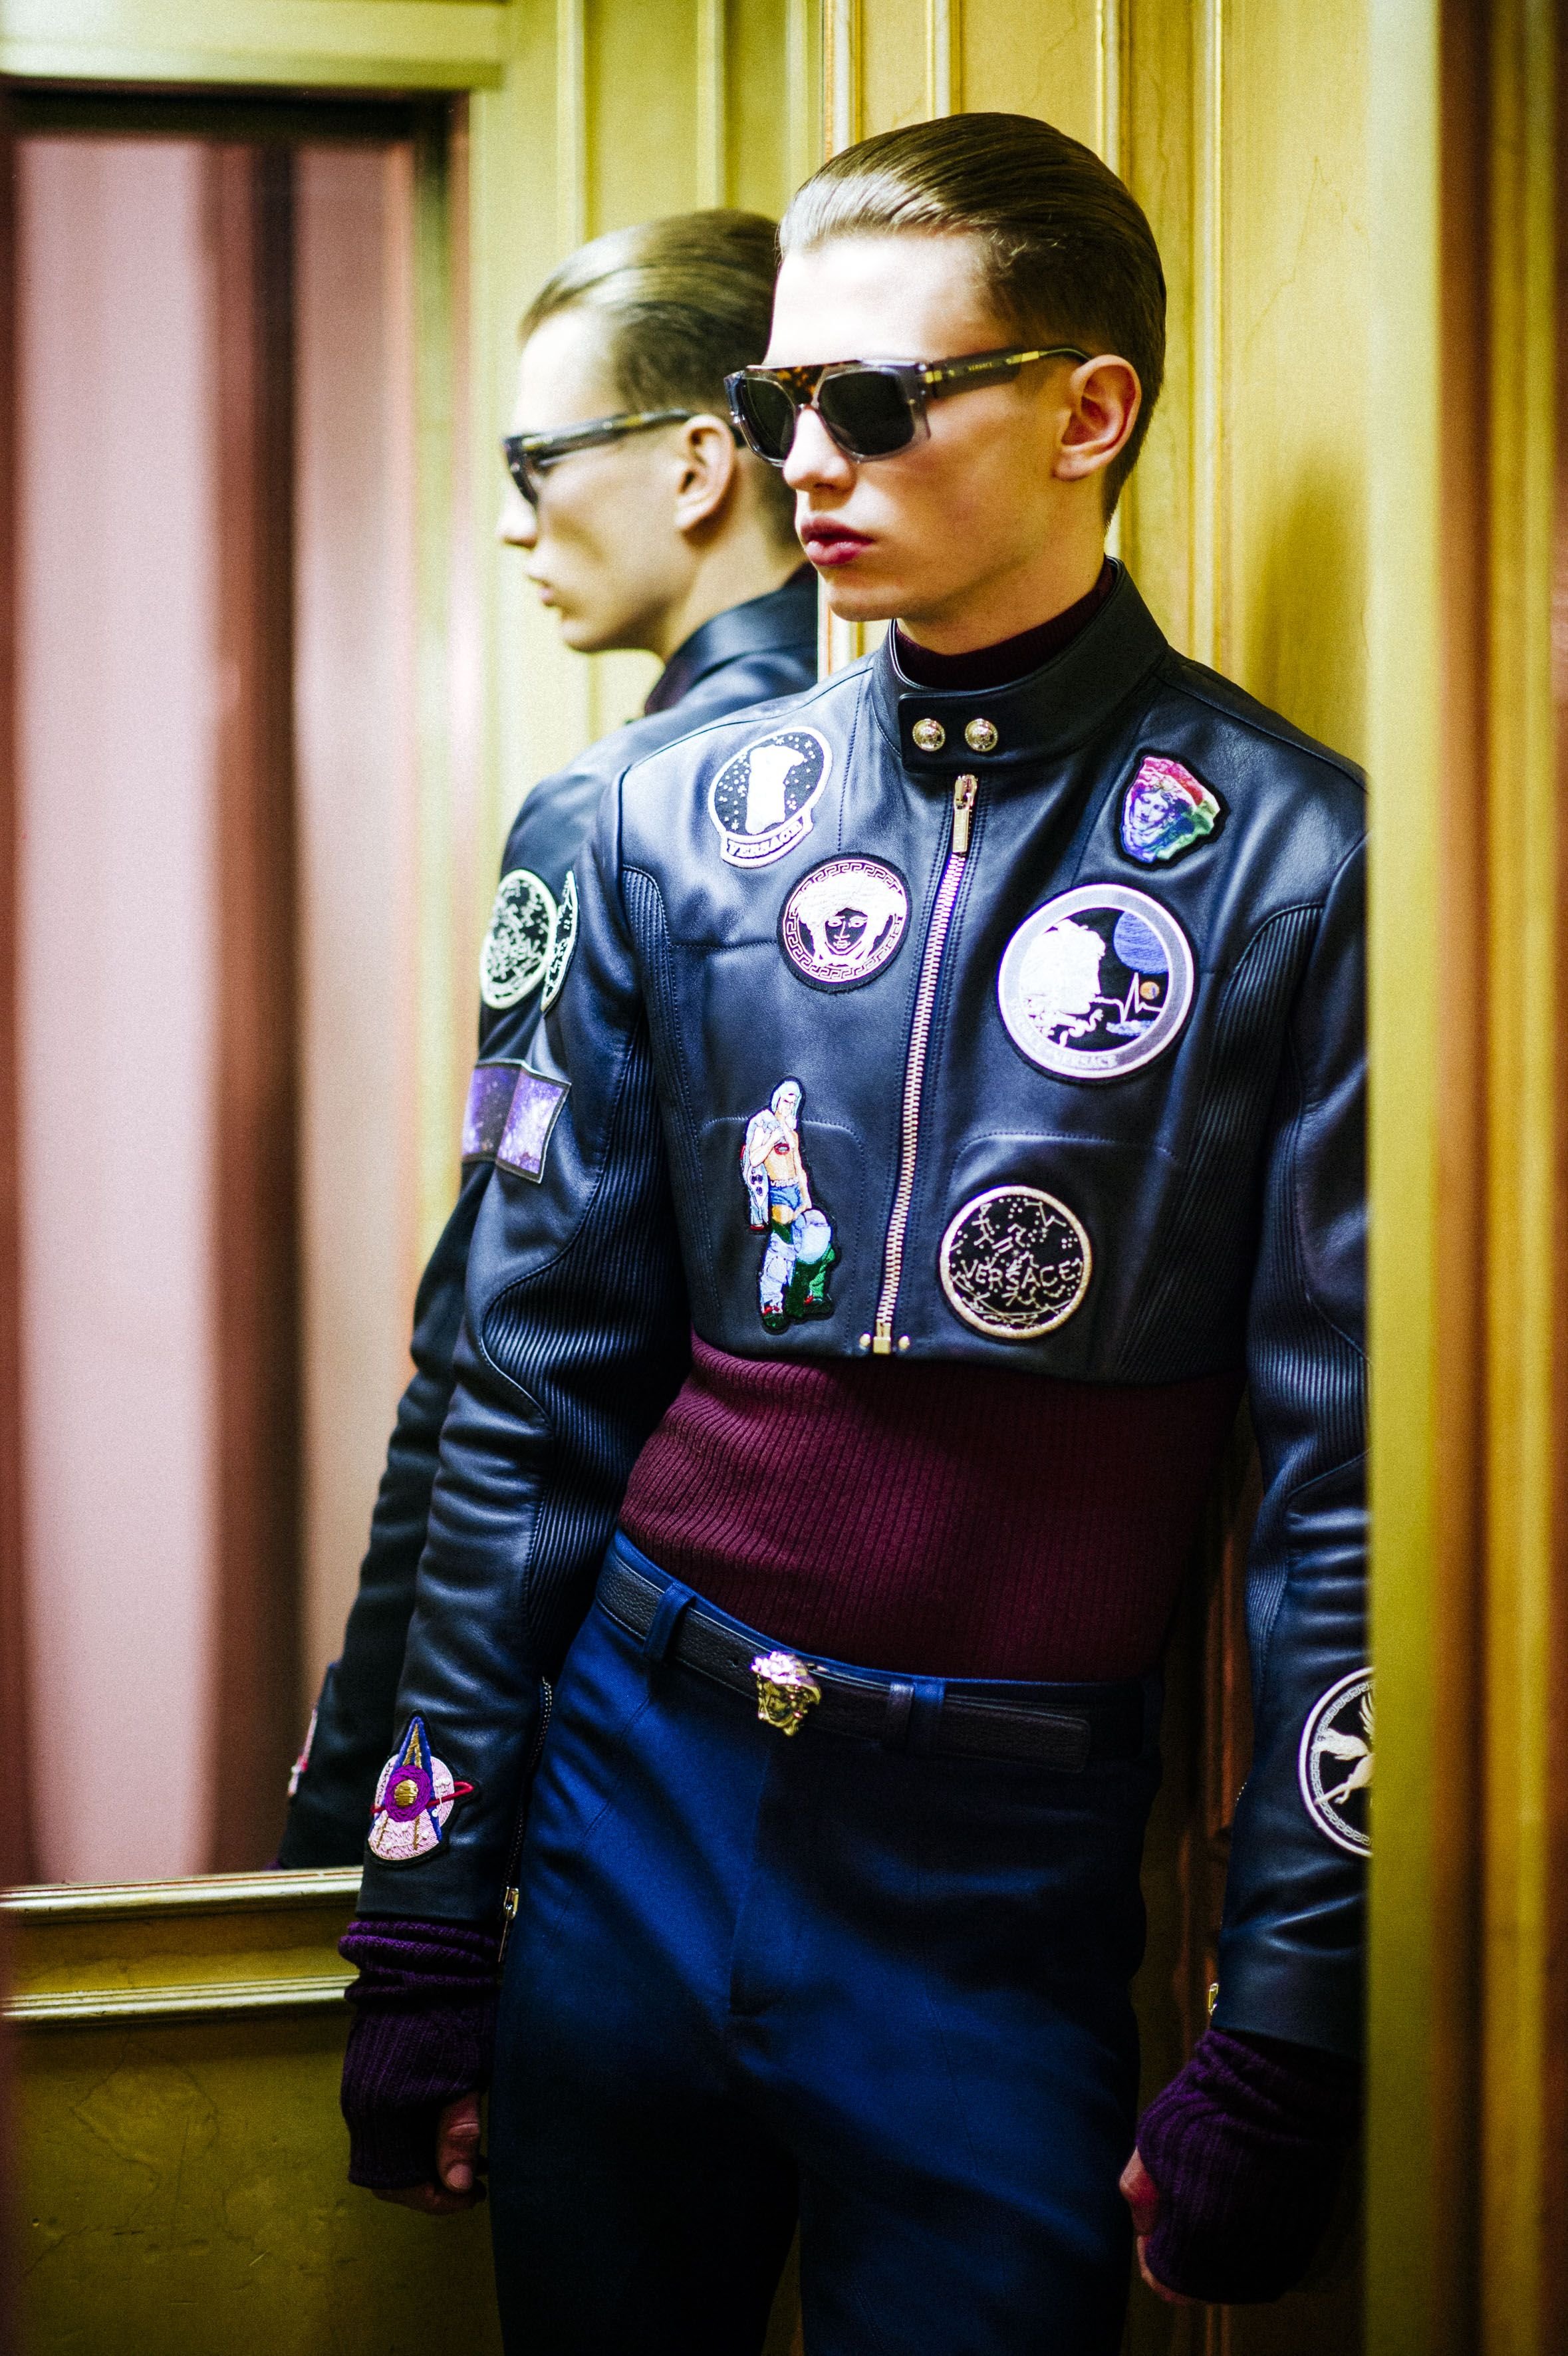 bb106c6981 Astronaut attitude - embroidered memento patches on leather jackets take  the Versace man to space. Photo by Rahi Rezvani